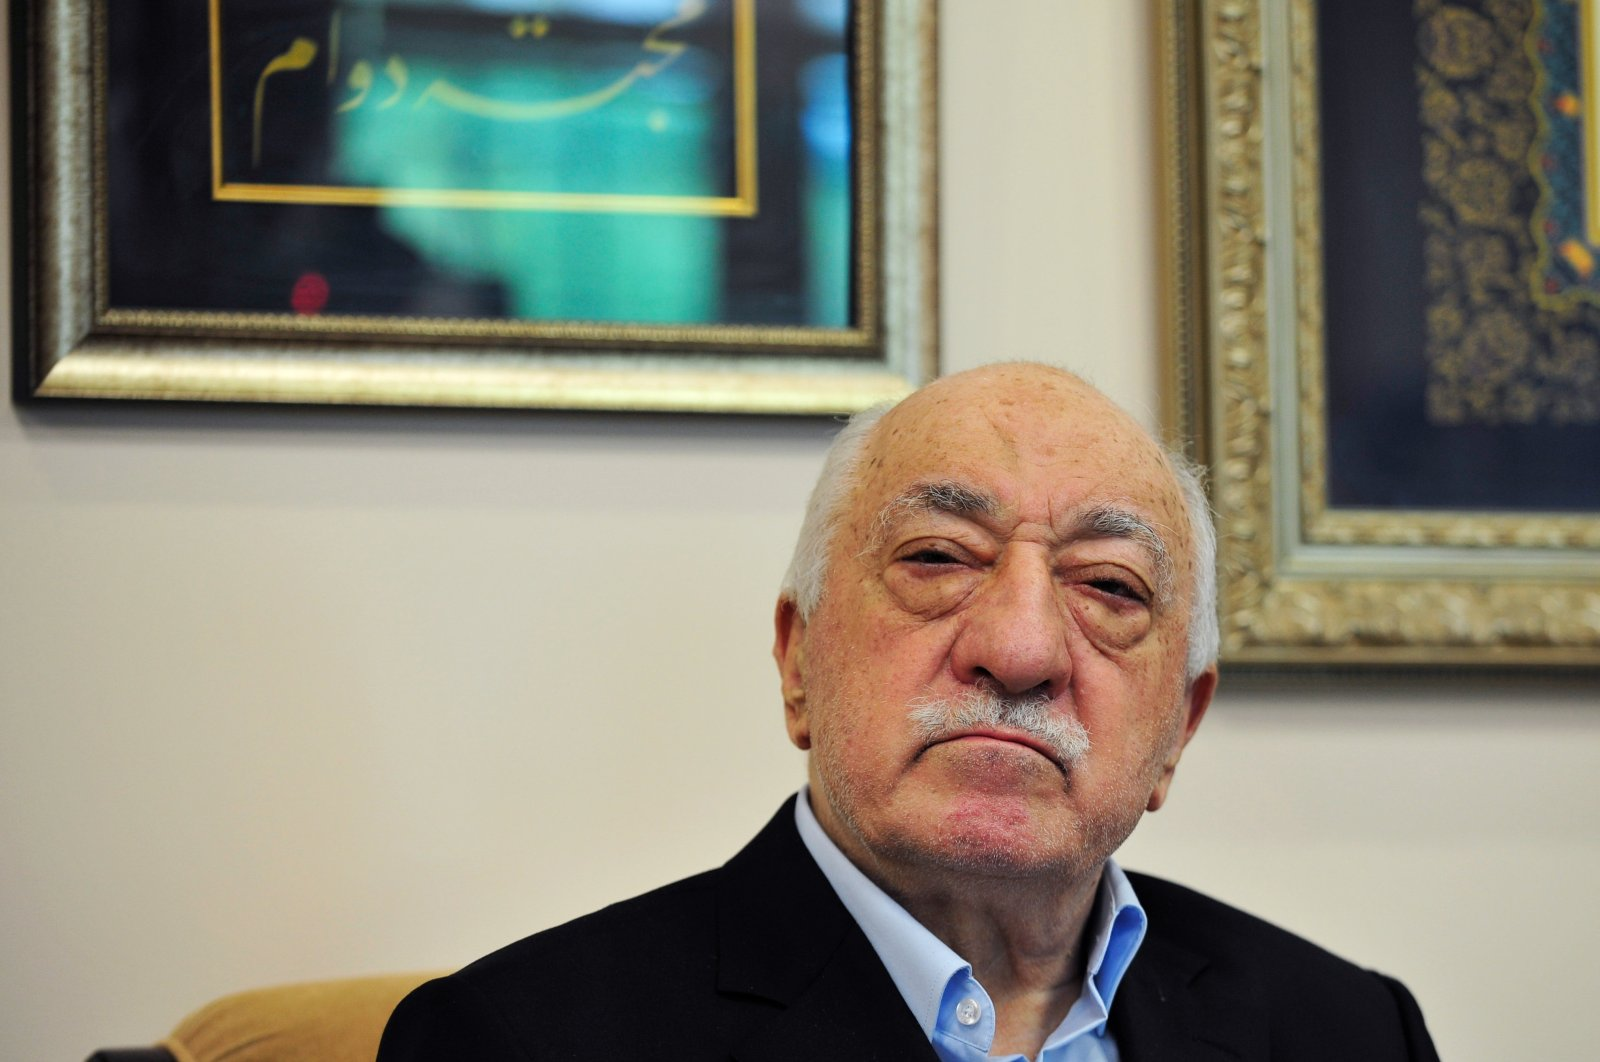 FETÖ leader Fetullah Gülen poses for a photo while speaking to members of the media at his compound in Saylorsburg, Pennsylvania, July 17, 2016. (AP Photo)